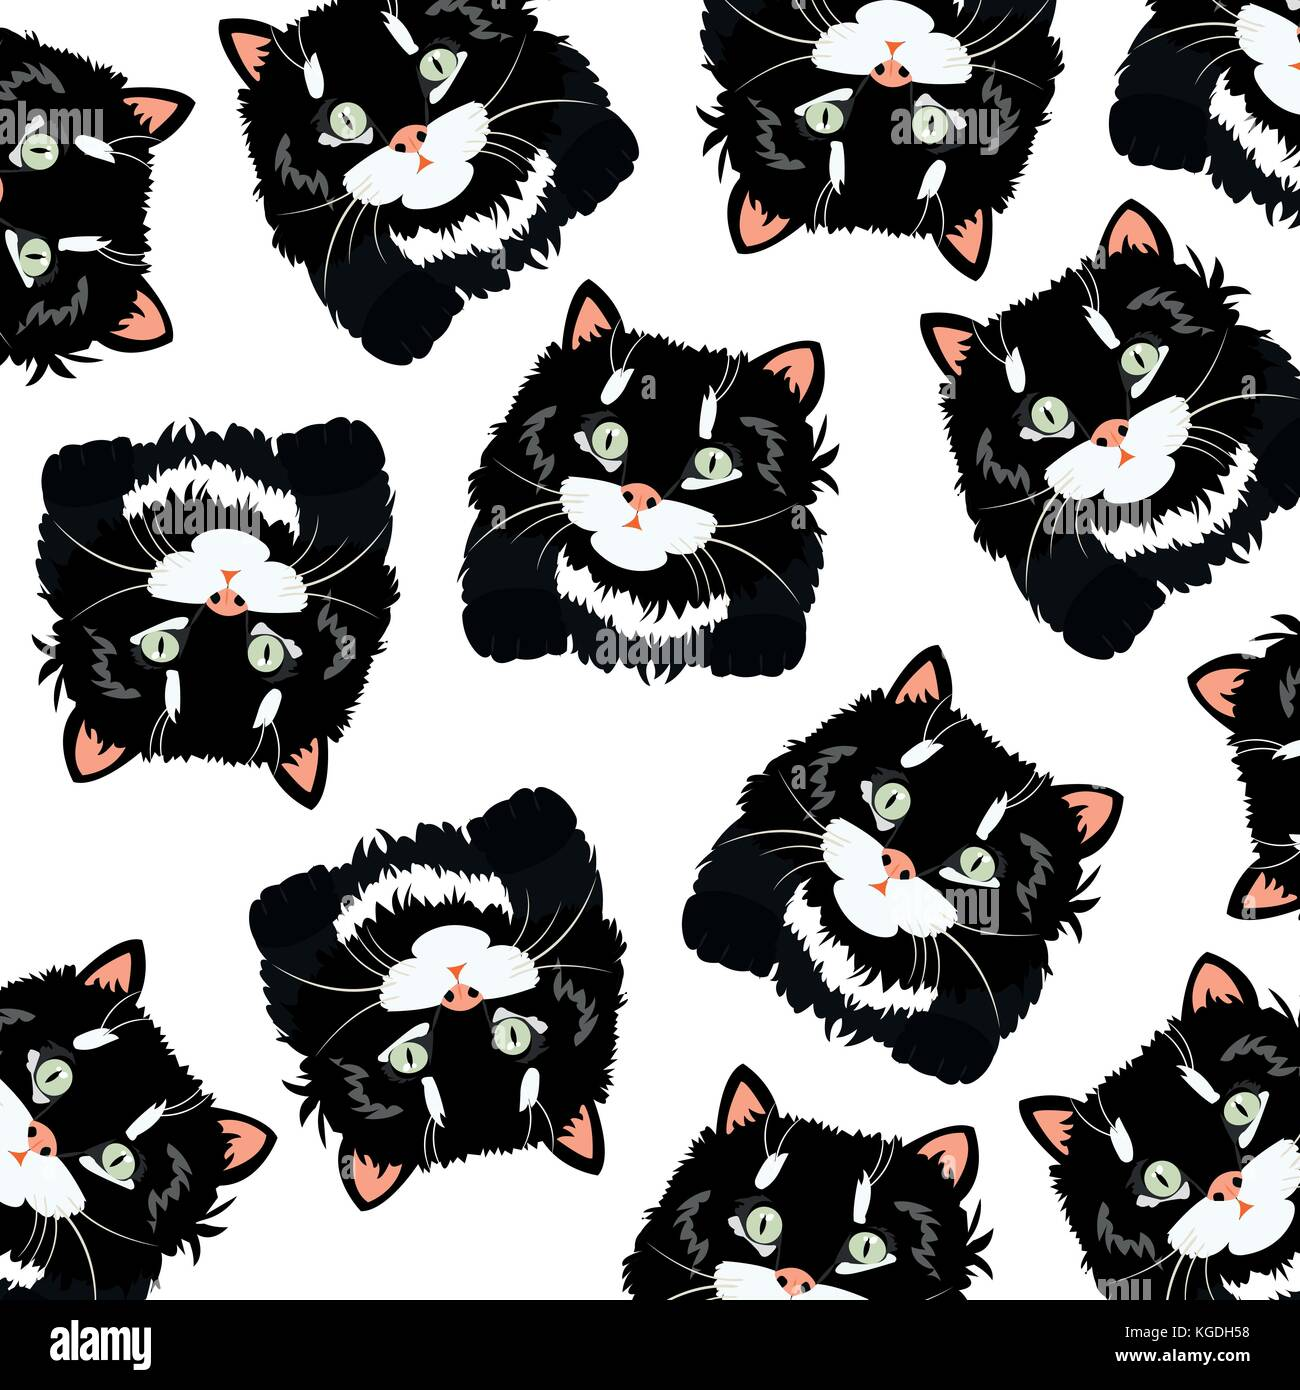 Black cats on white background - Stock Vector